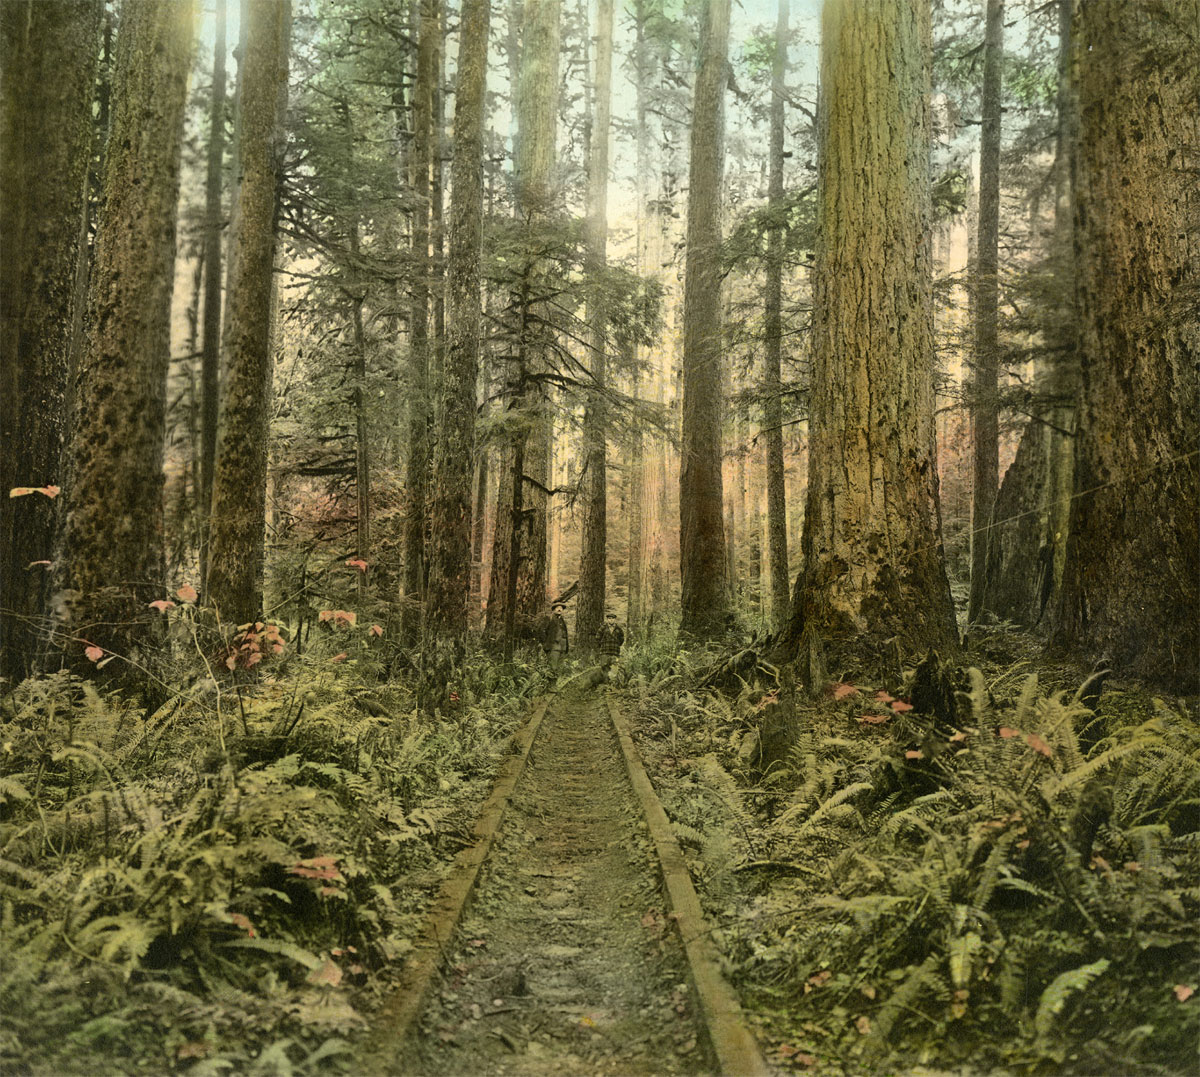 An old railway track used to haul lumber runs through a redwood forest in Northern California. By the early 1860s, the old-growth redwoods in the East Bay had been felled and logging activity had shifted to the Santa Cruz Mountains and Northern California. (Photo courtesy of the California Historical Society)